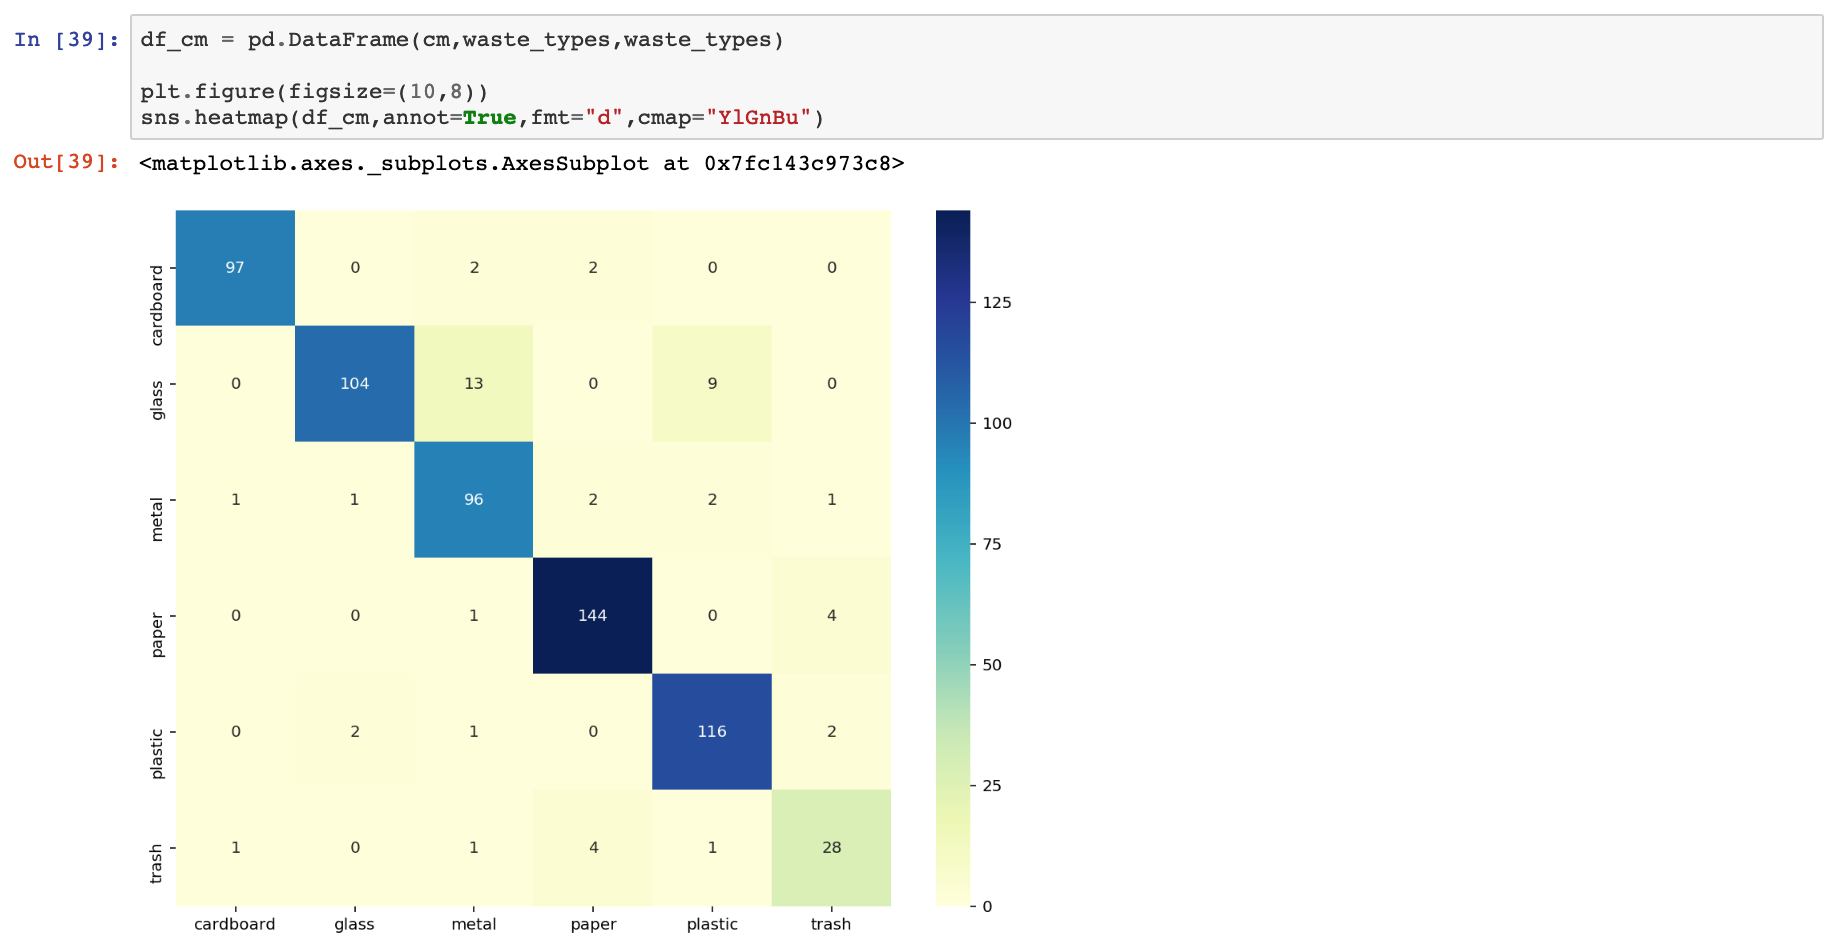 How to build an image classifier for waste sorting - Towards